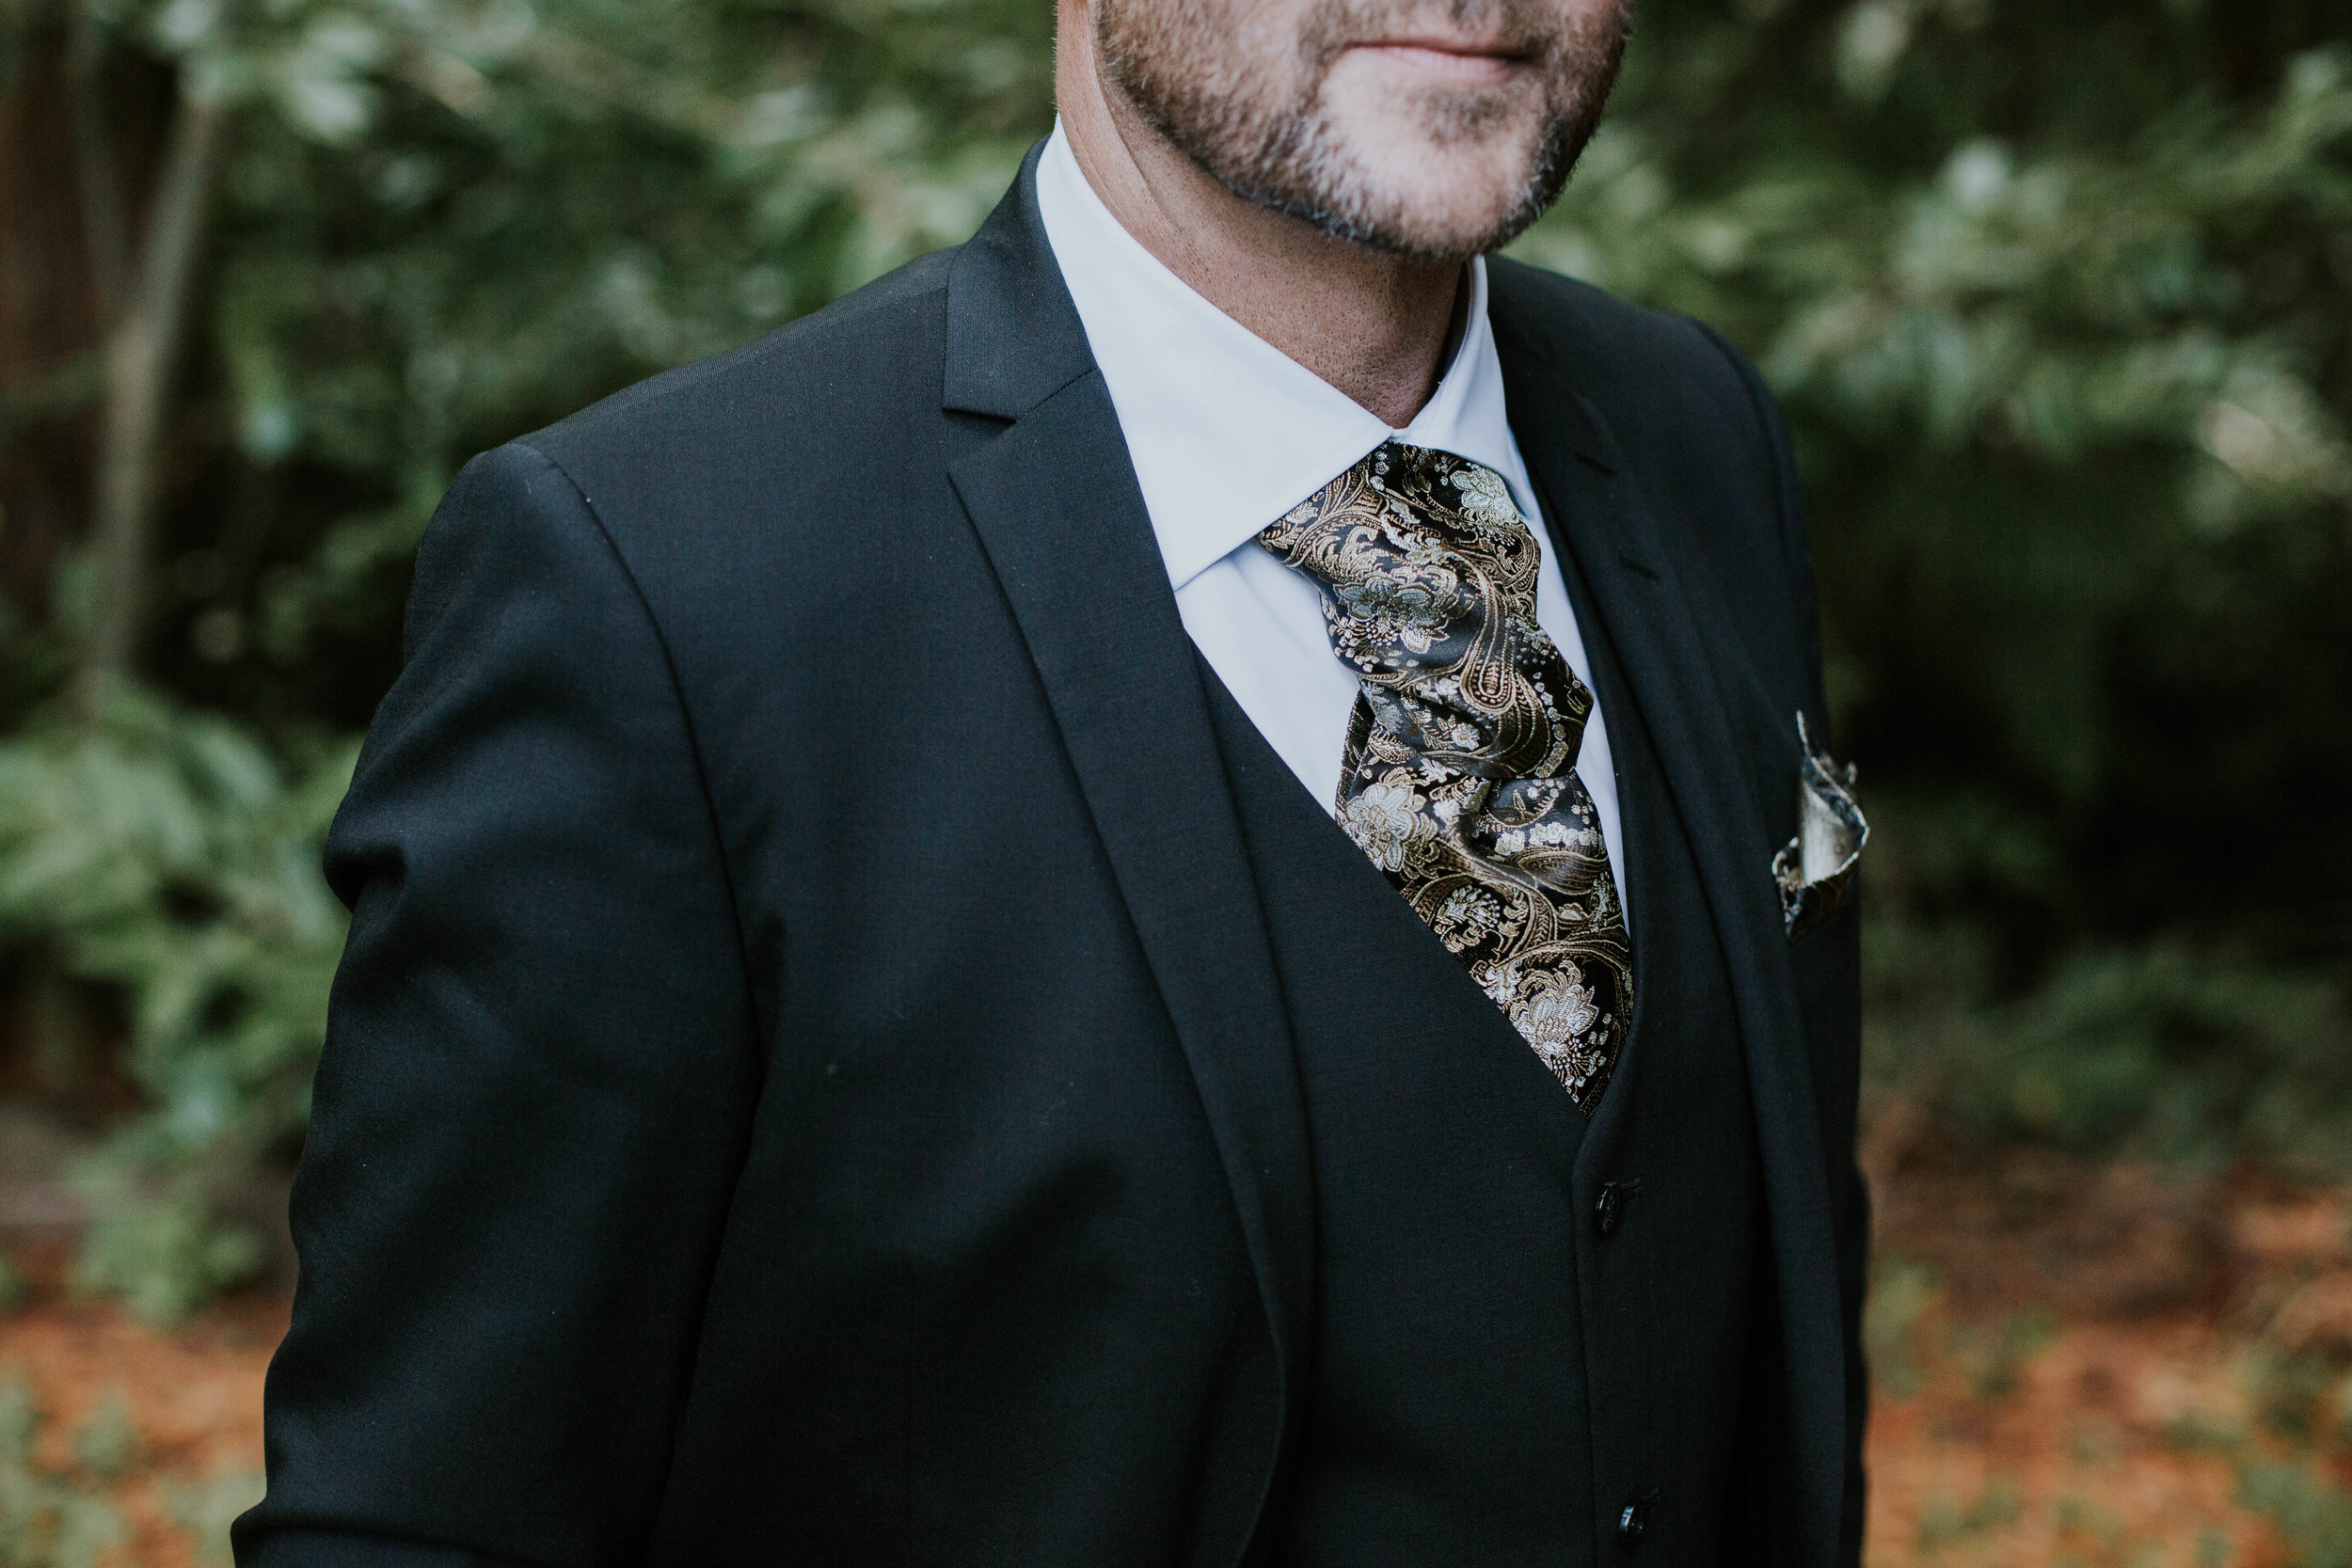 Groom's portrait details.